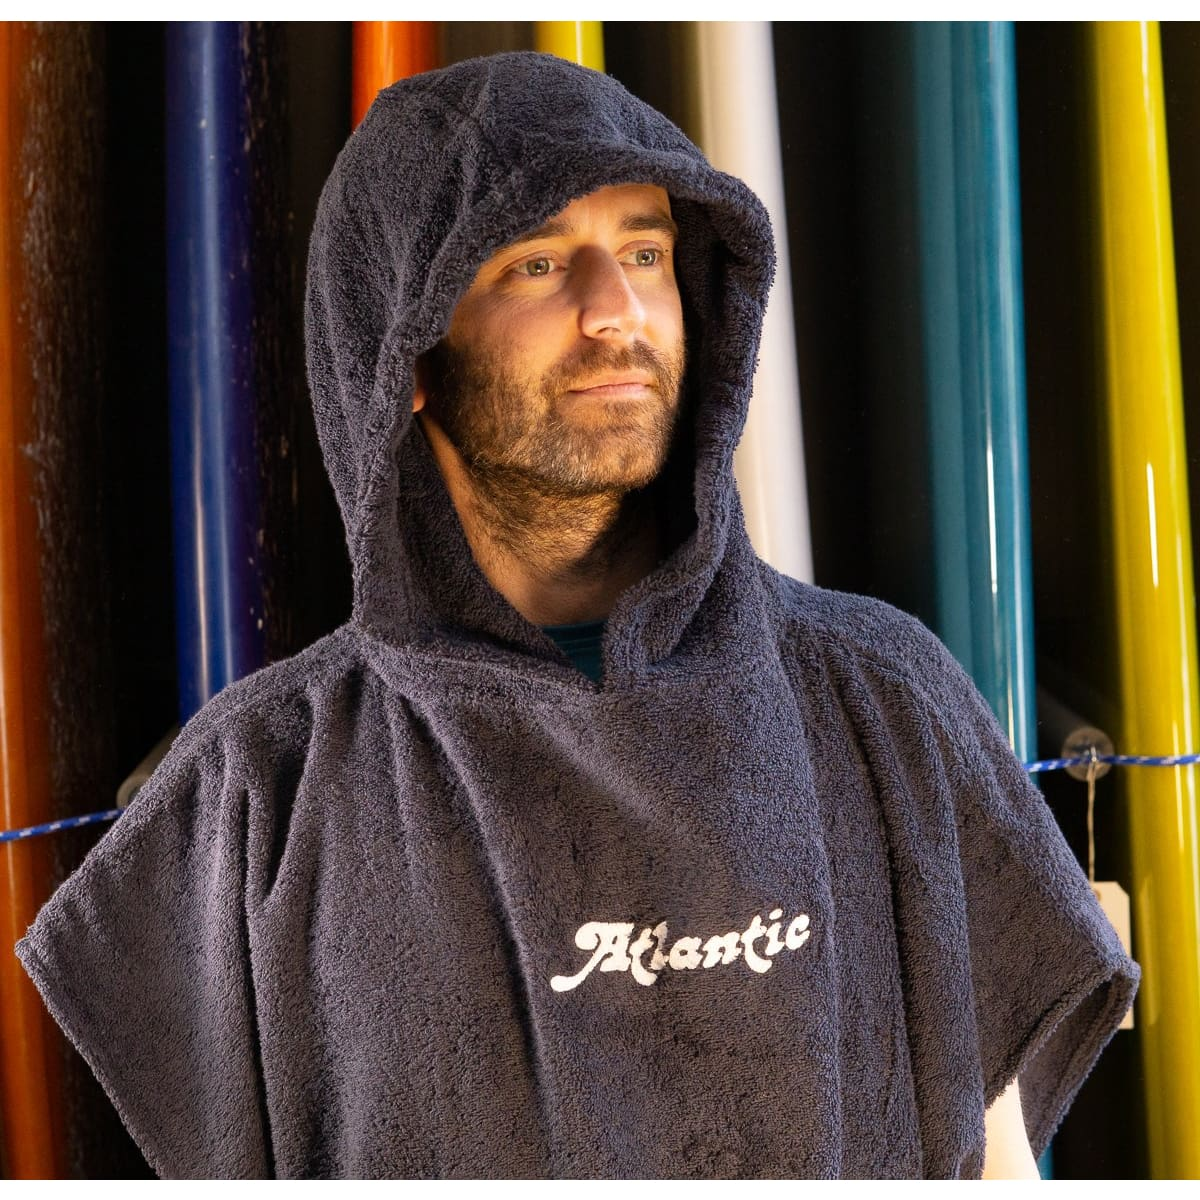 Atlantic Surfers Hooded Change Robe - clothing